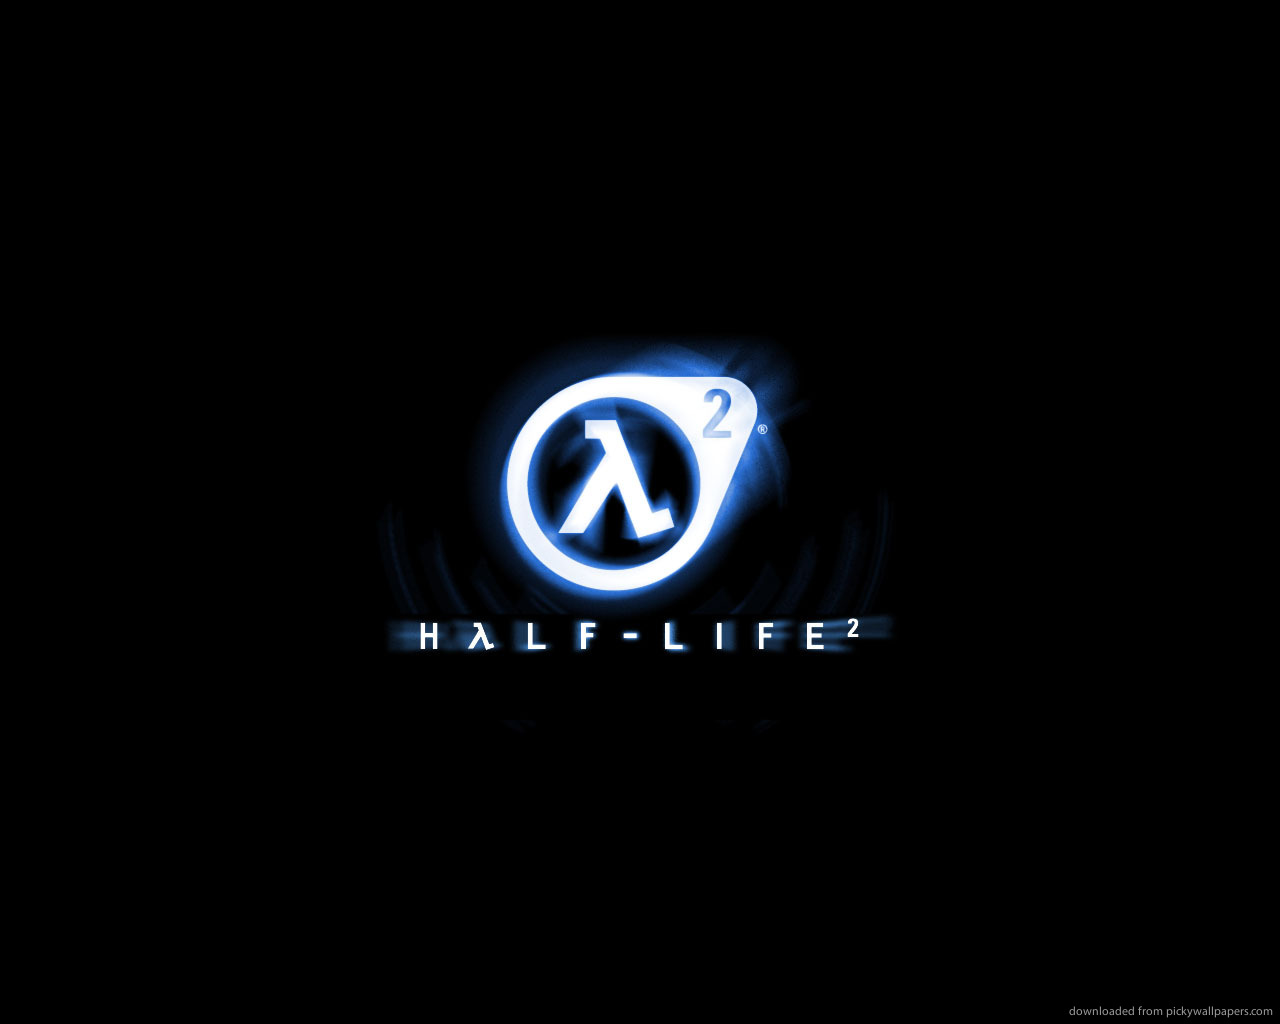 Half Life Iphone Wallpaper: Half-Life 2 Wallpapers, Pictures, Images